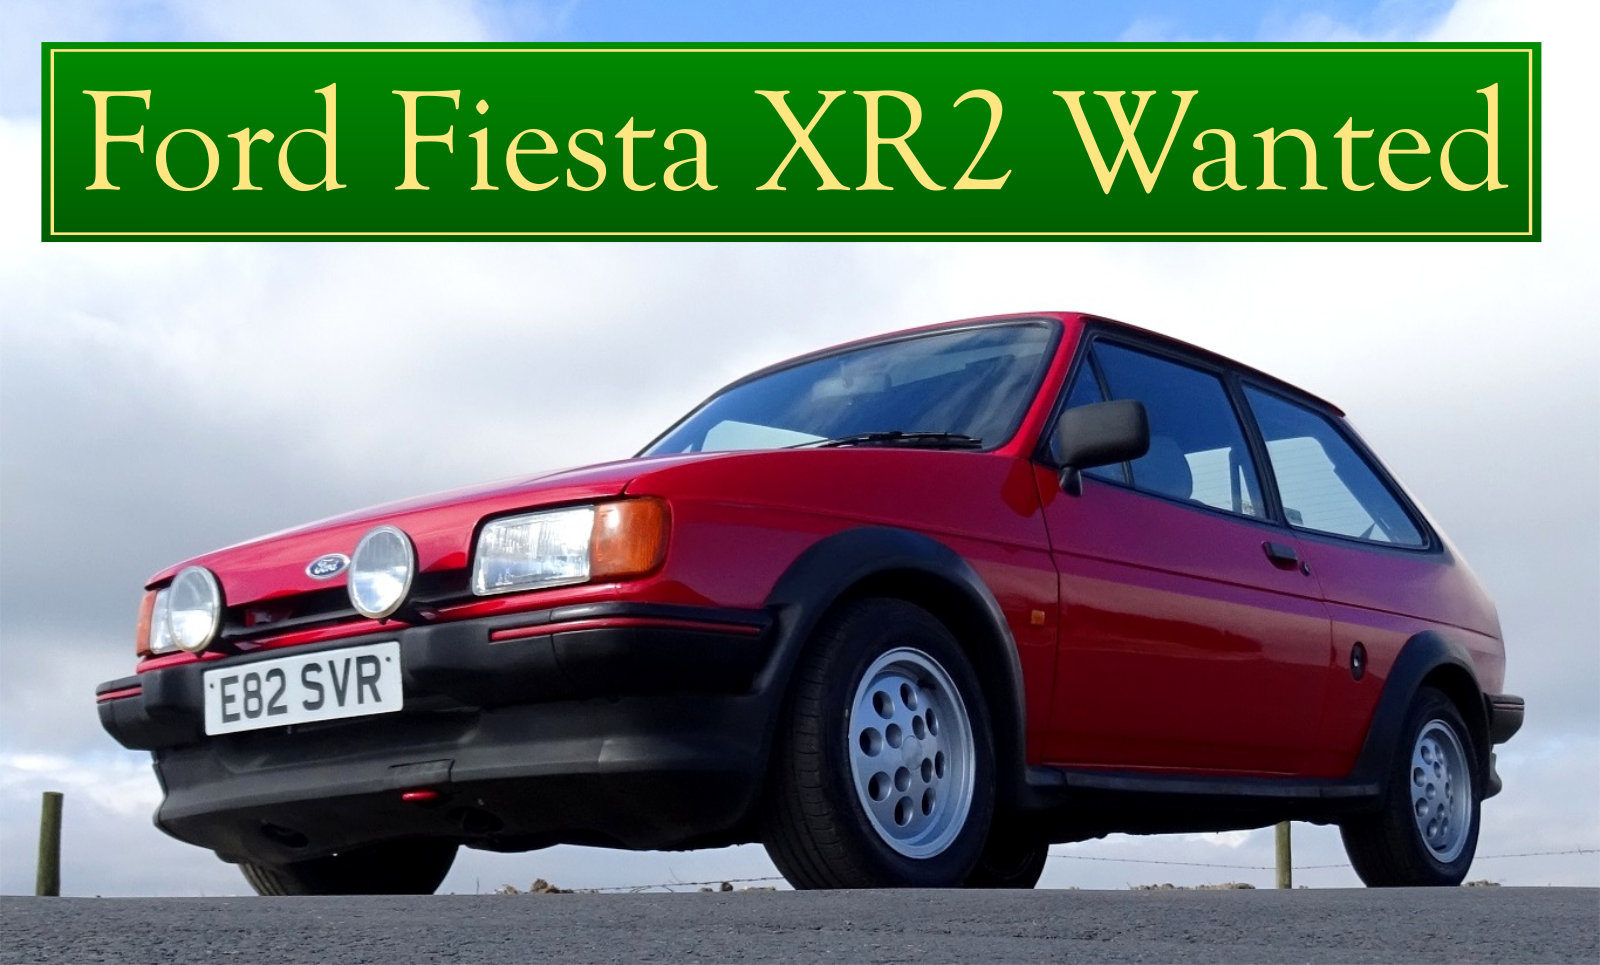 1985 FORD FIESTA XR2 WANTED, CLASSIC CARS WANTED,QUICK PAYMENT Wanted (picture 1 of 6)